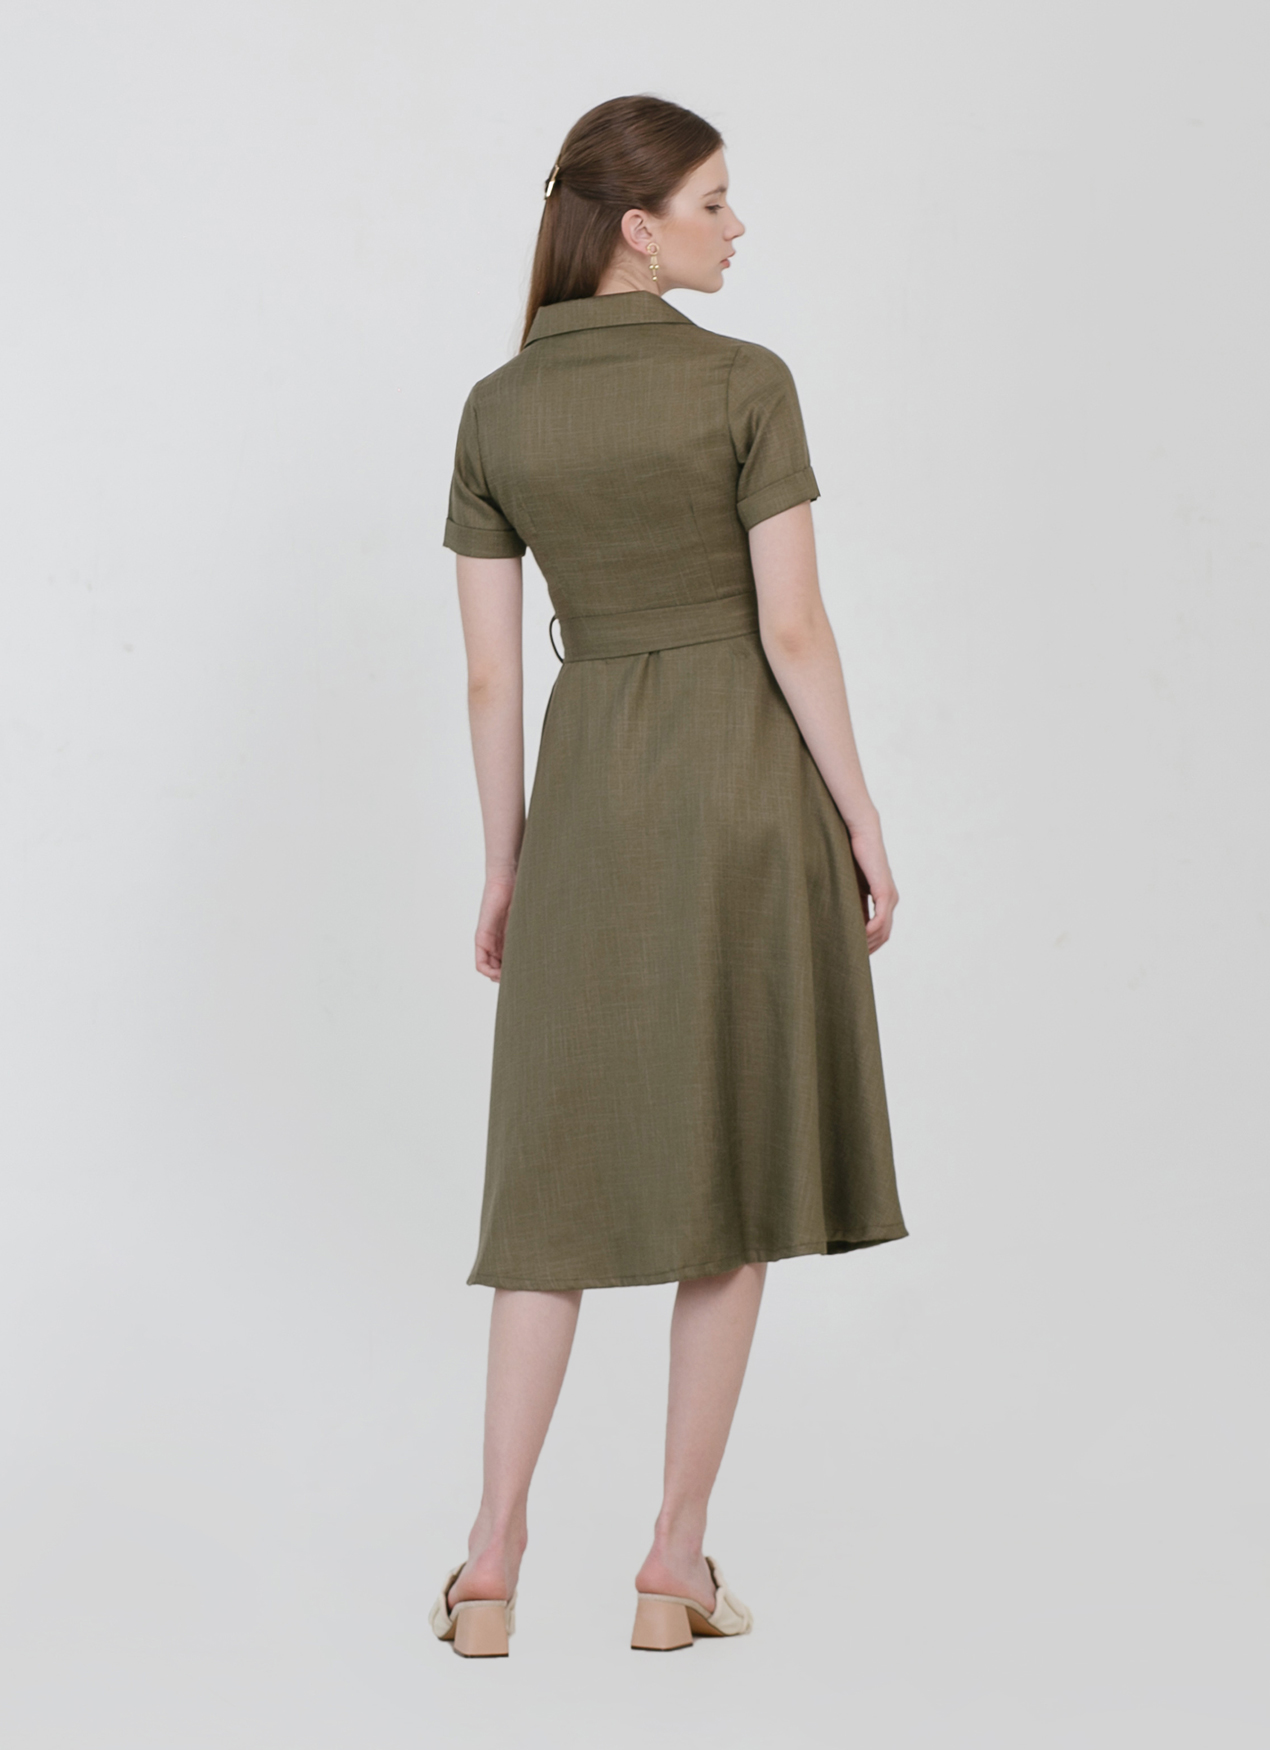 CLOTH INC Adele Tied Linen Dress - Olive